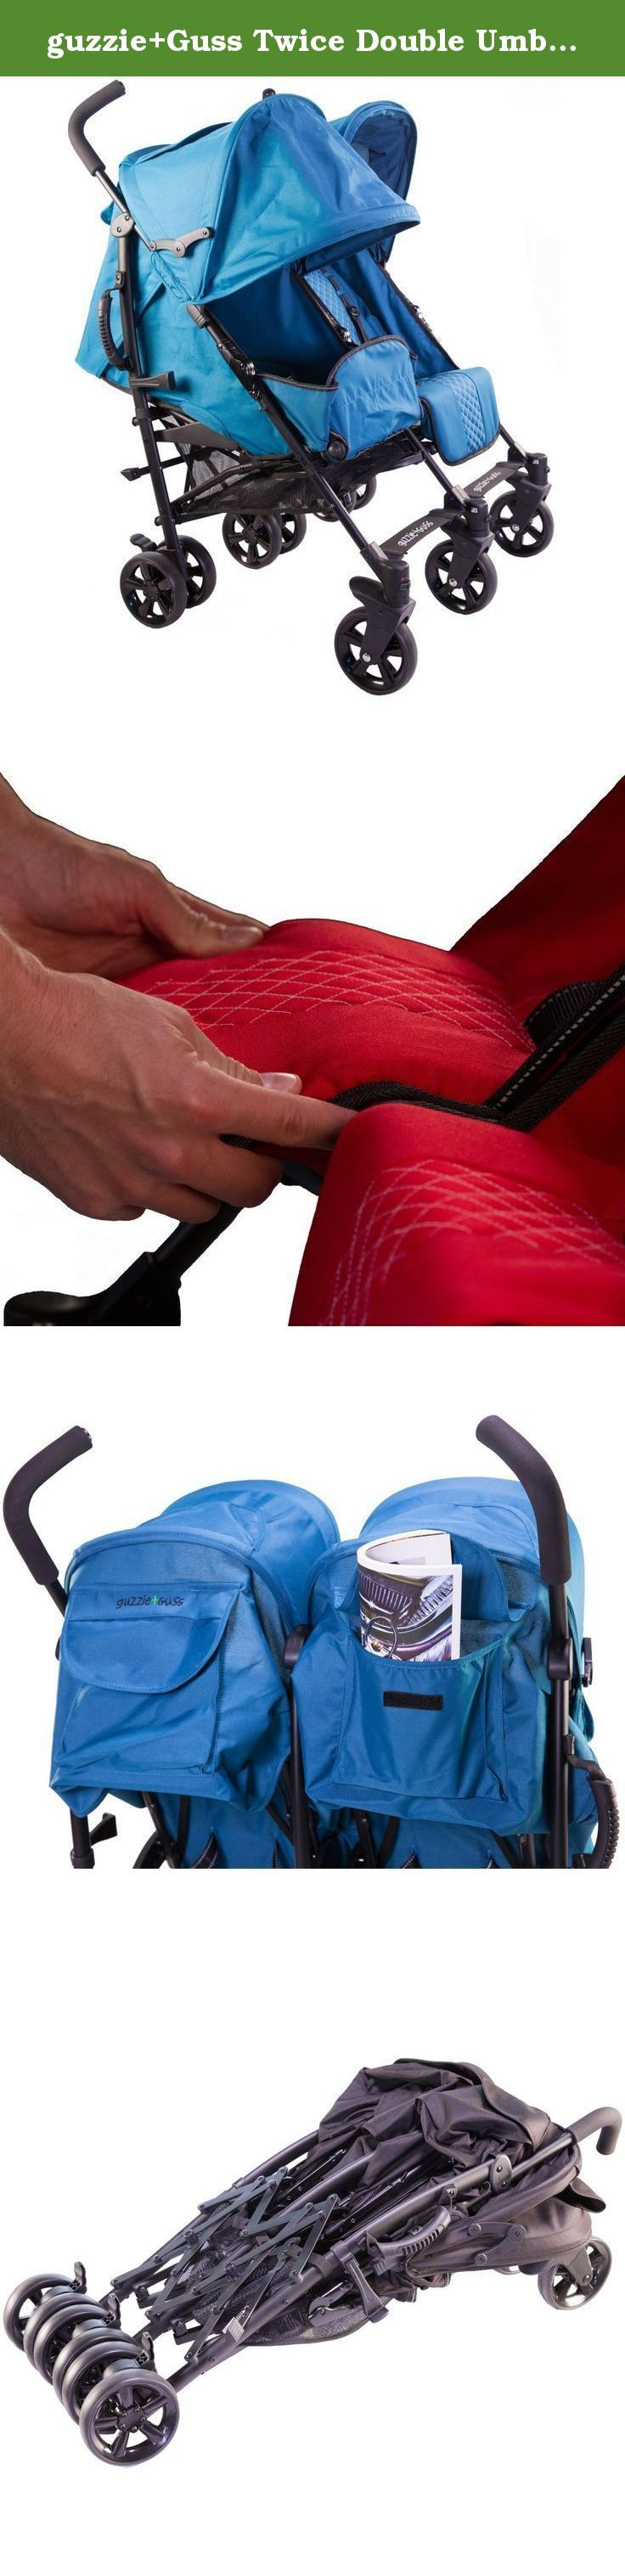 guzzie+Guss Twice Double Umbrella Stroller, Red. Travel for two made easier: You may have two, but that doesn't mean they are always on the same page. That's why Twice has separate one-hand controlled seat reclines, individual extendable sun coverage canopies, adjustable footrests, and all comfort suspension. It also has reflective safety strips, is simple to fold and has a convenient carry handle. The entire family is going to be happy with your choice.